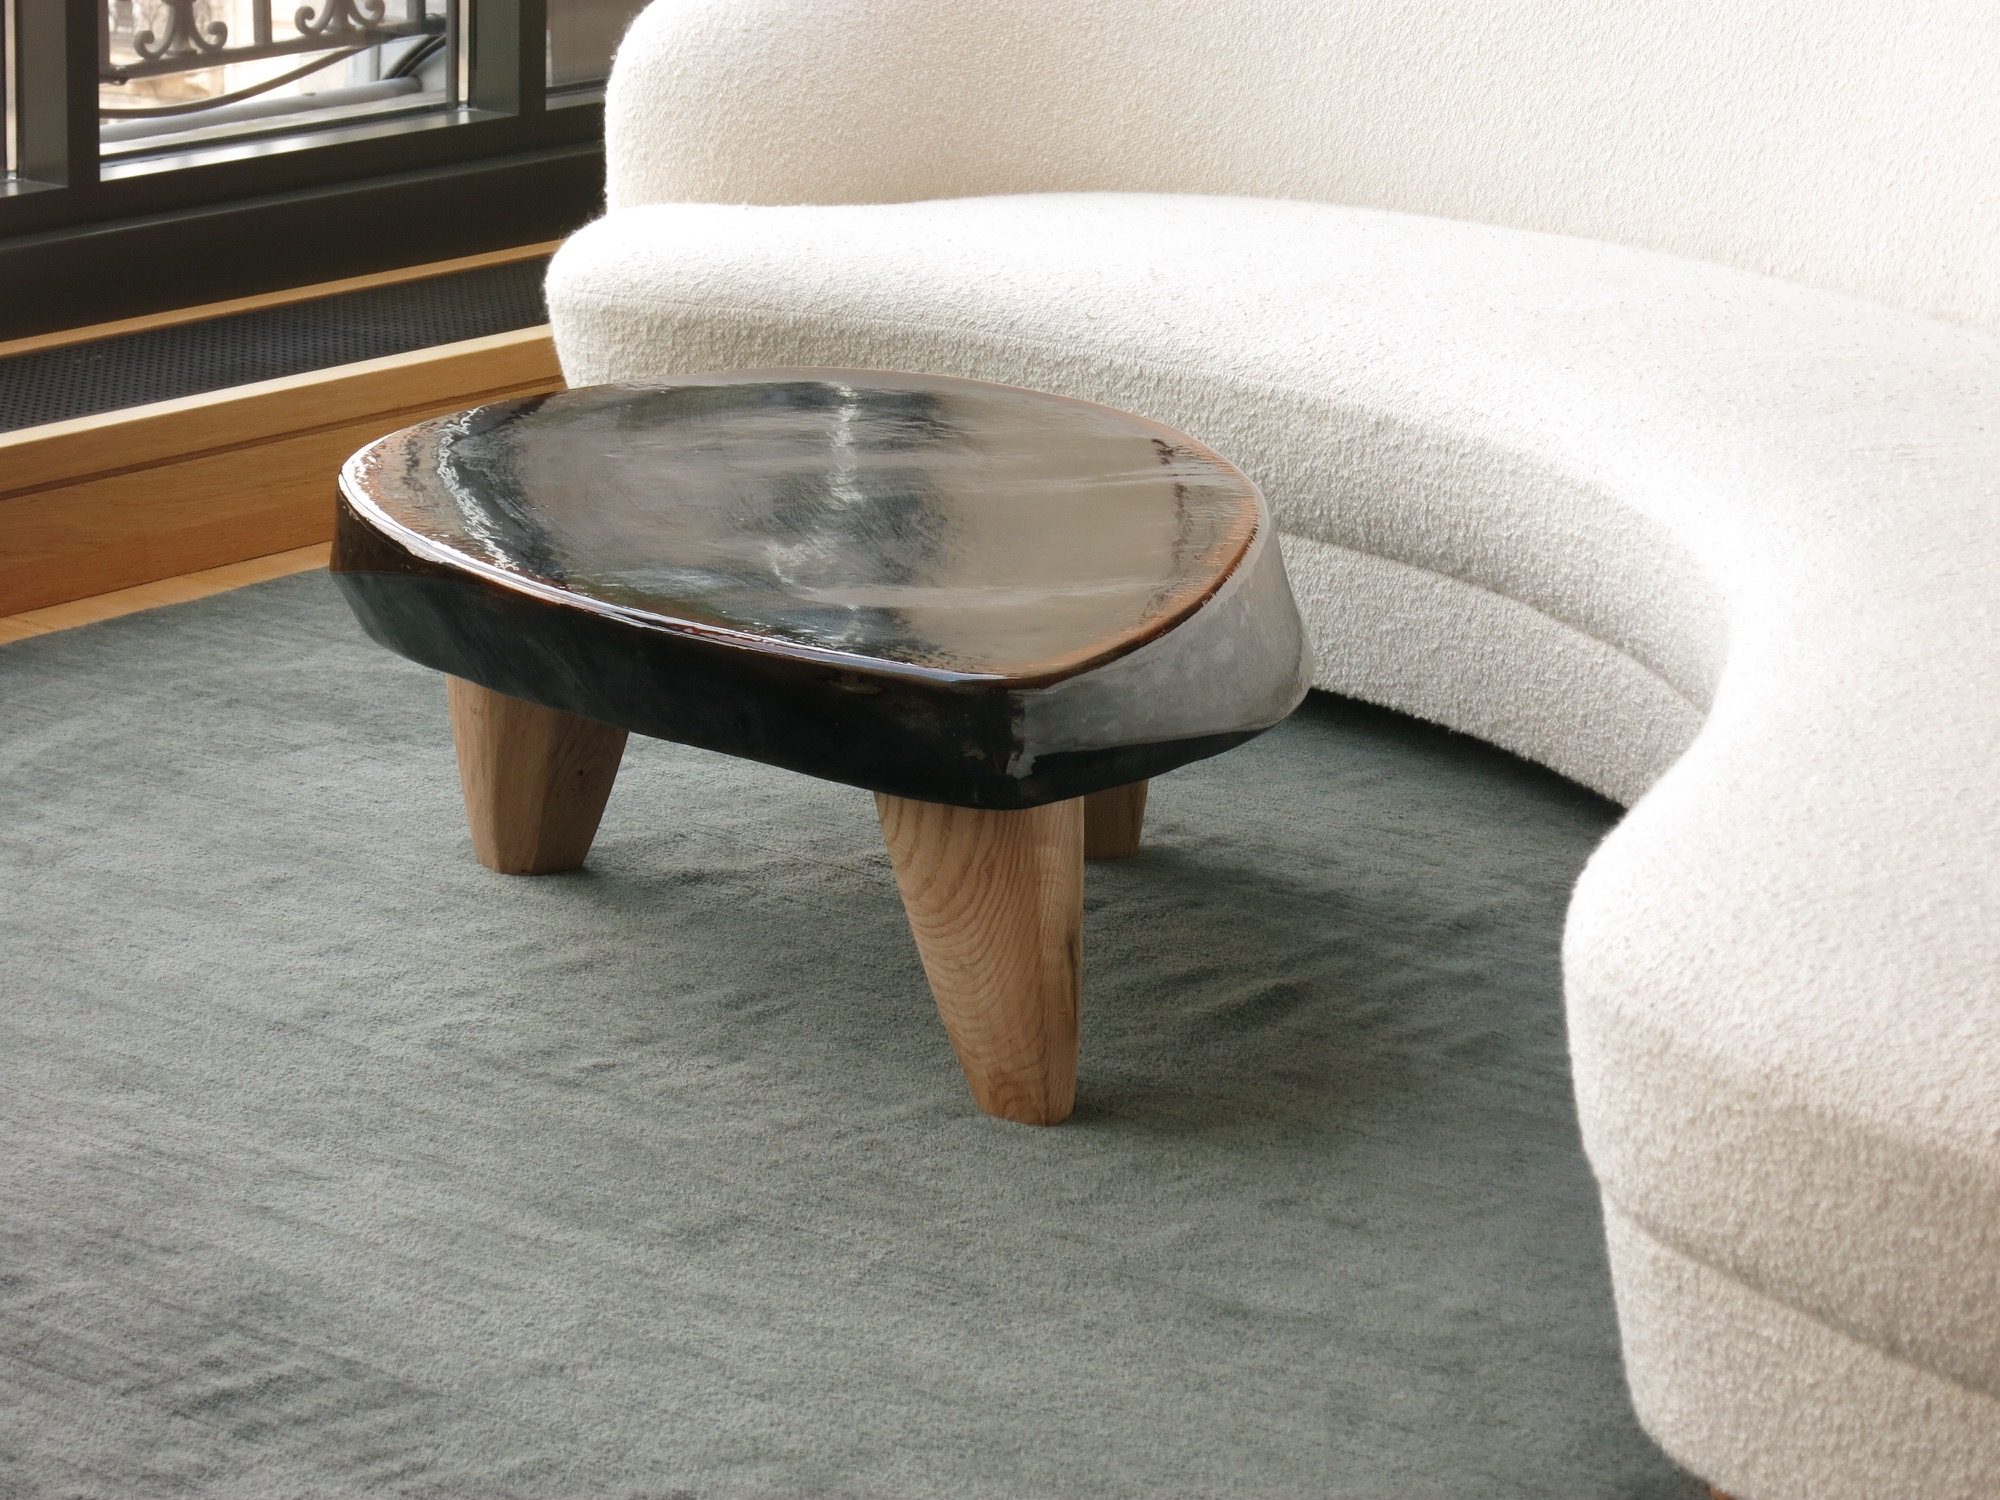 Table basse pierre eloi bris for Table basse pierre